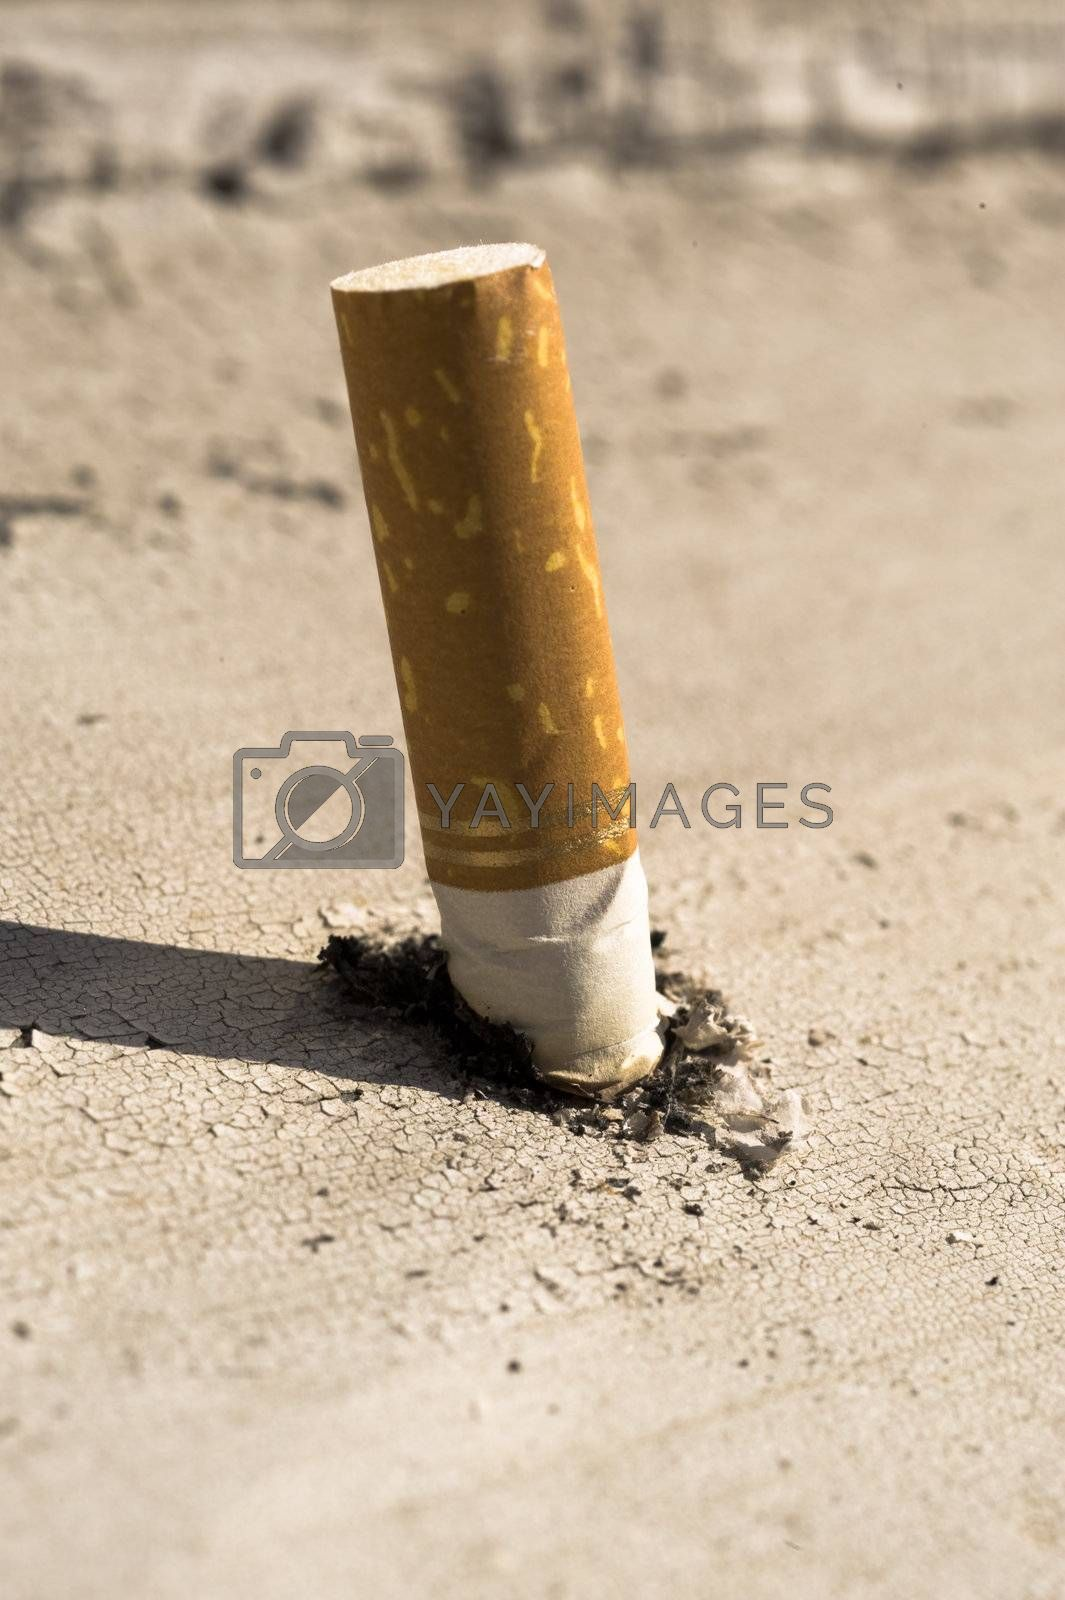 Royalty free image of Put out cigarette by Alenmax